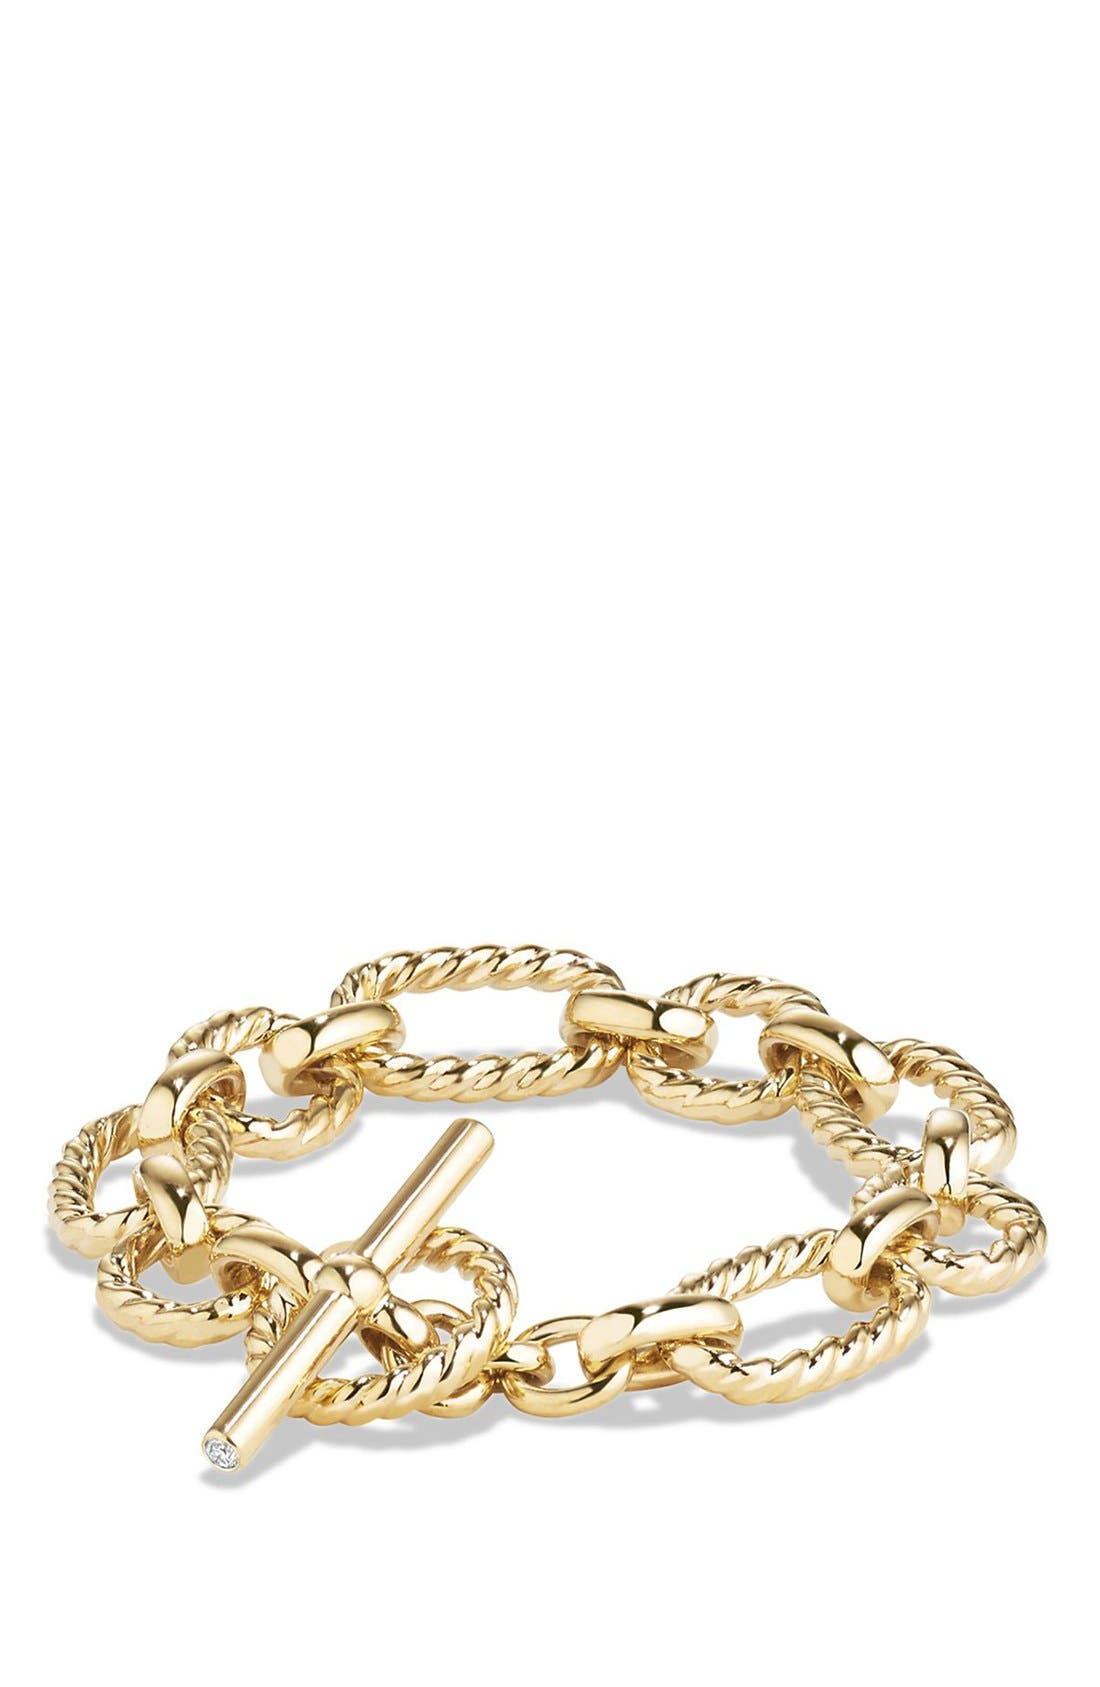 'Chain' Cushion Link Bracelet with Diamonds in 18K Gold,                         Main,                         color, 710